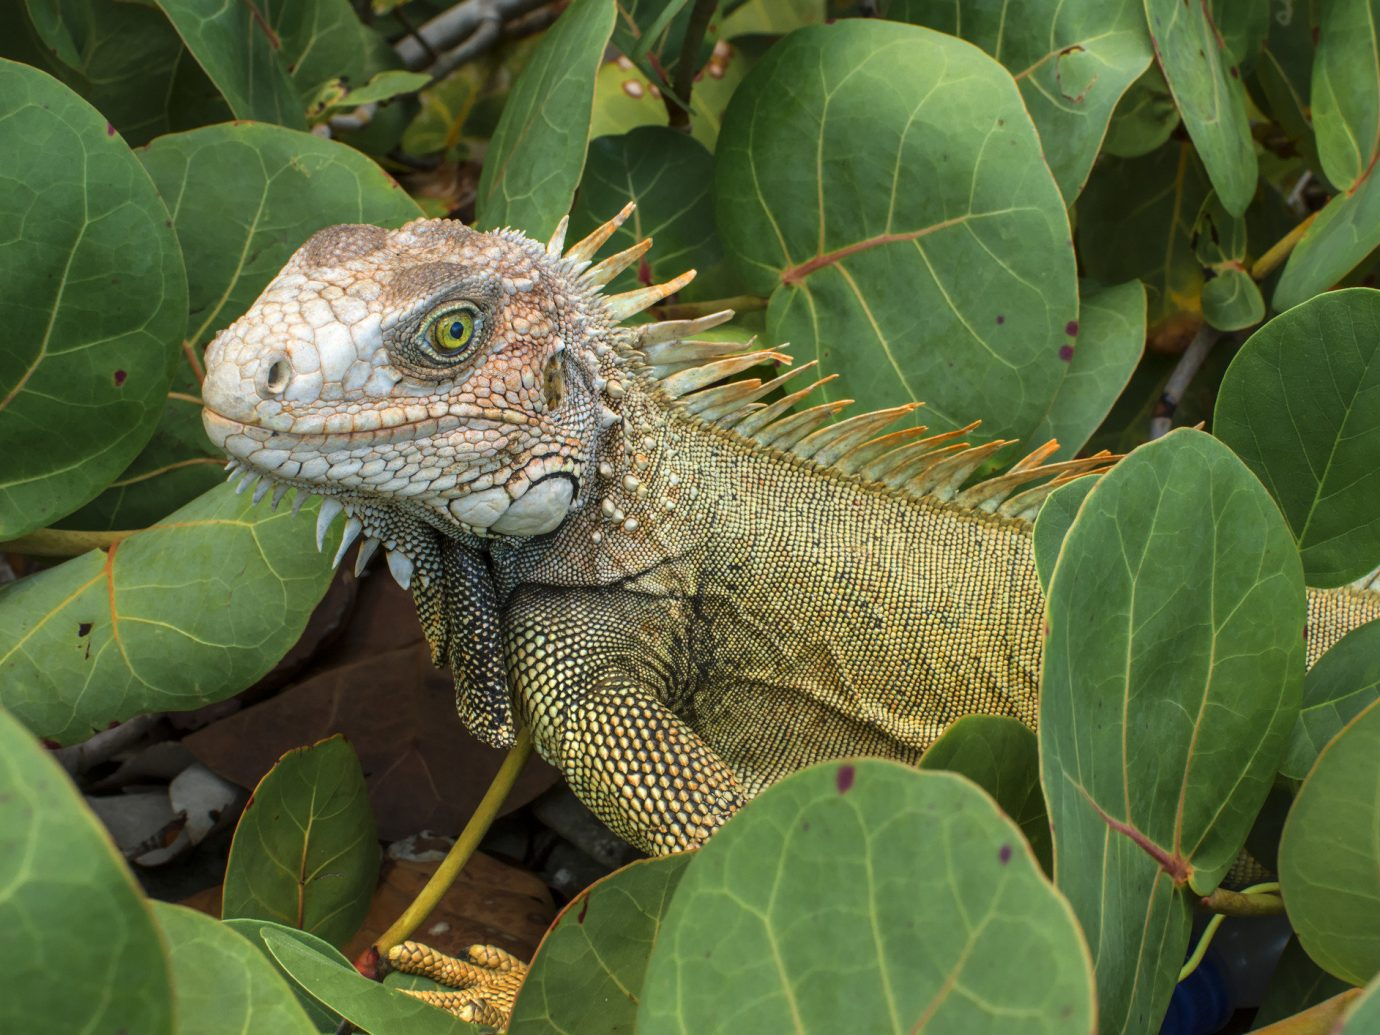 Beach Trip Ideas reptile plant animal outdoor lizard iguana vertebrate green iguania scaled reptile leaf fauna Wildlife chameleon botany african chameleon Jungle tropics tortoise rainforest emydidae Garden surrounded